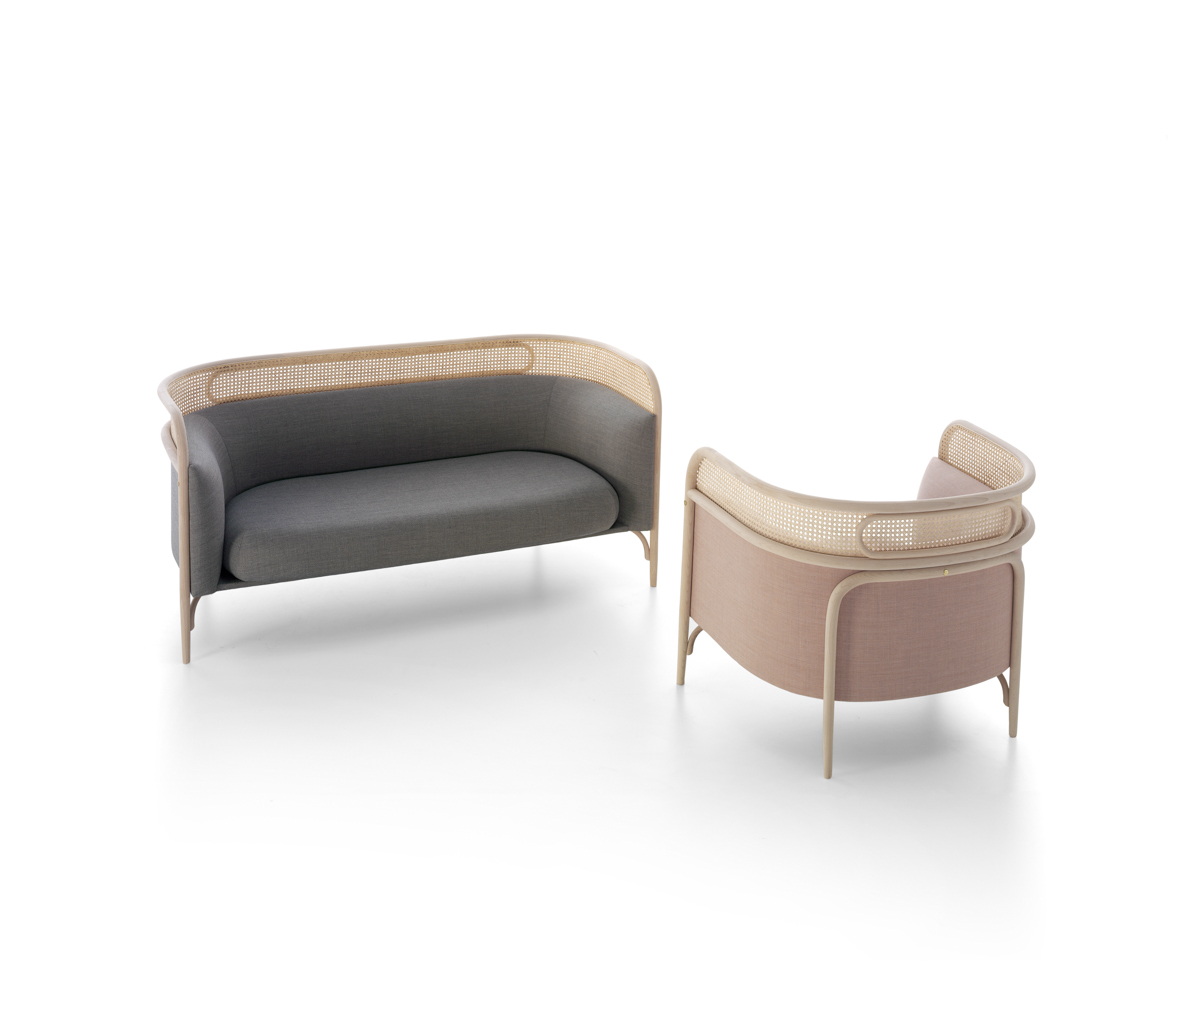 gtv_-targa-sofa_lounge_design-gamfratesi_5